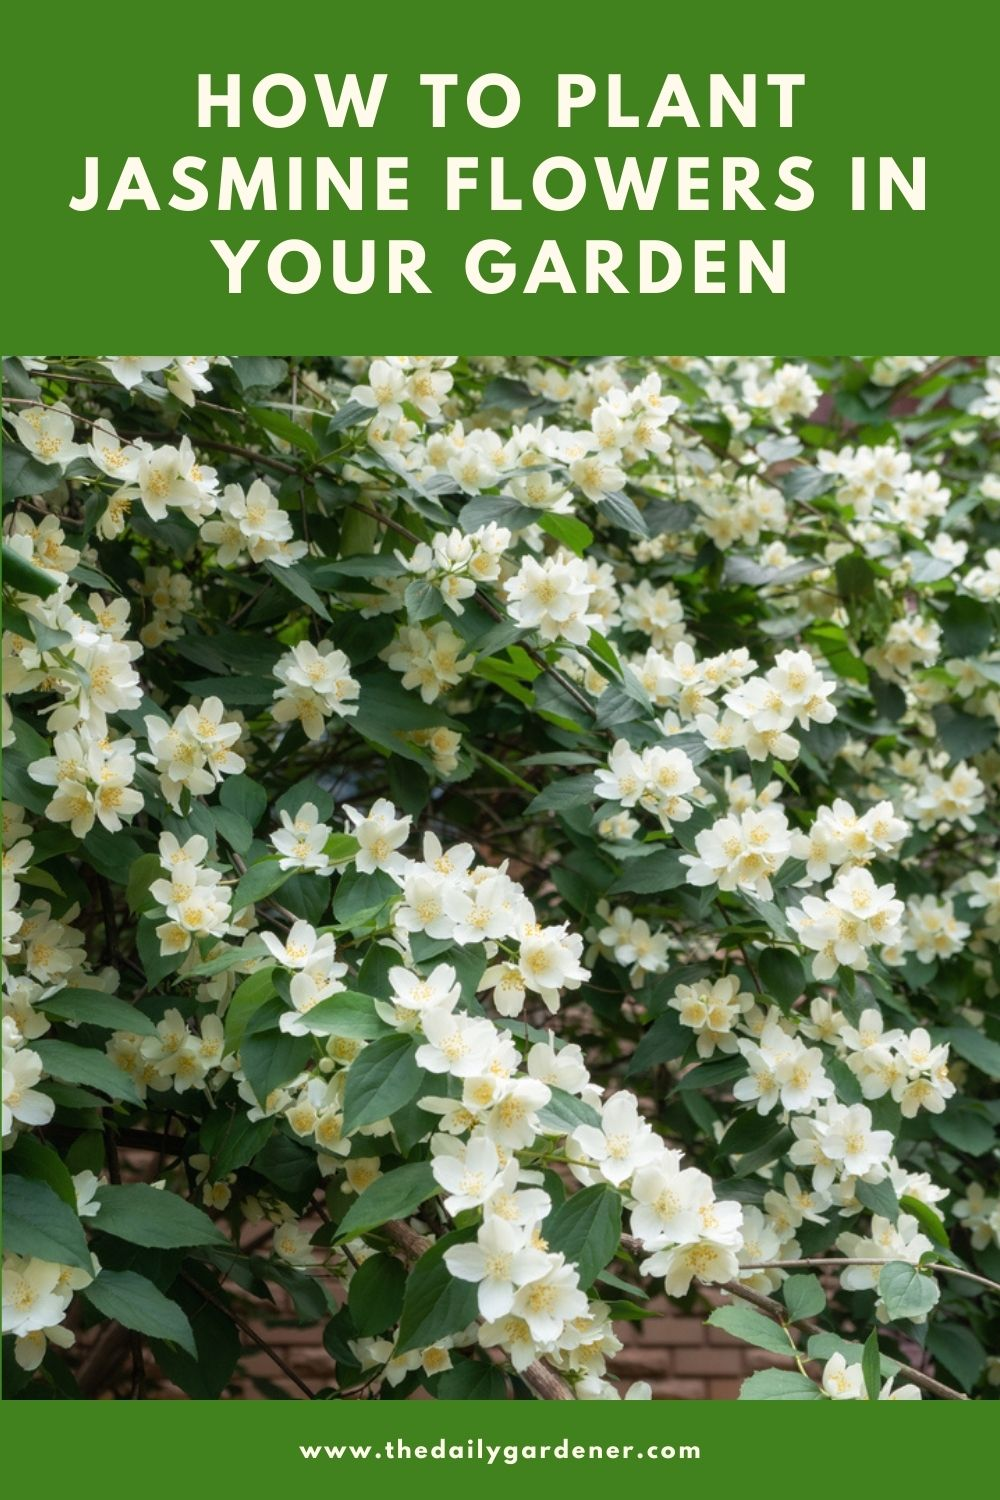 How to Plant Jasmine Flowers in Your Garden (Tricks to Care!) 2